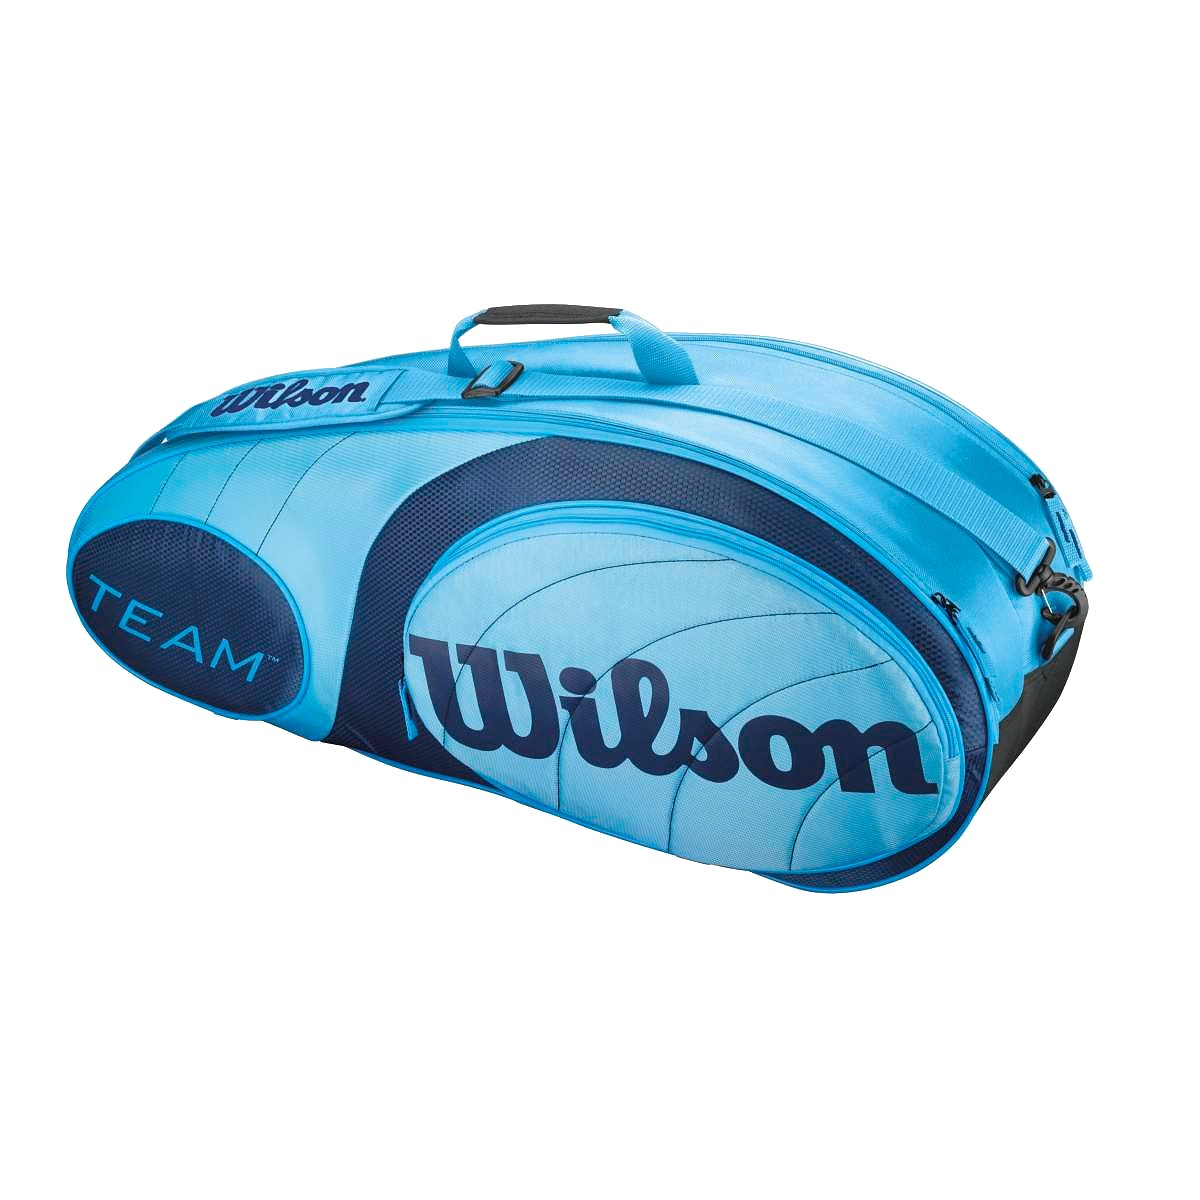 wilson team 6 bag blue wilson bags wilson team 6 racket bag can hold ...